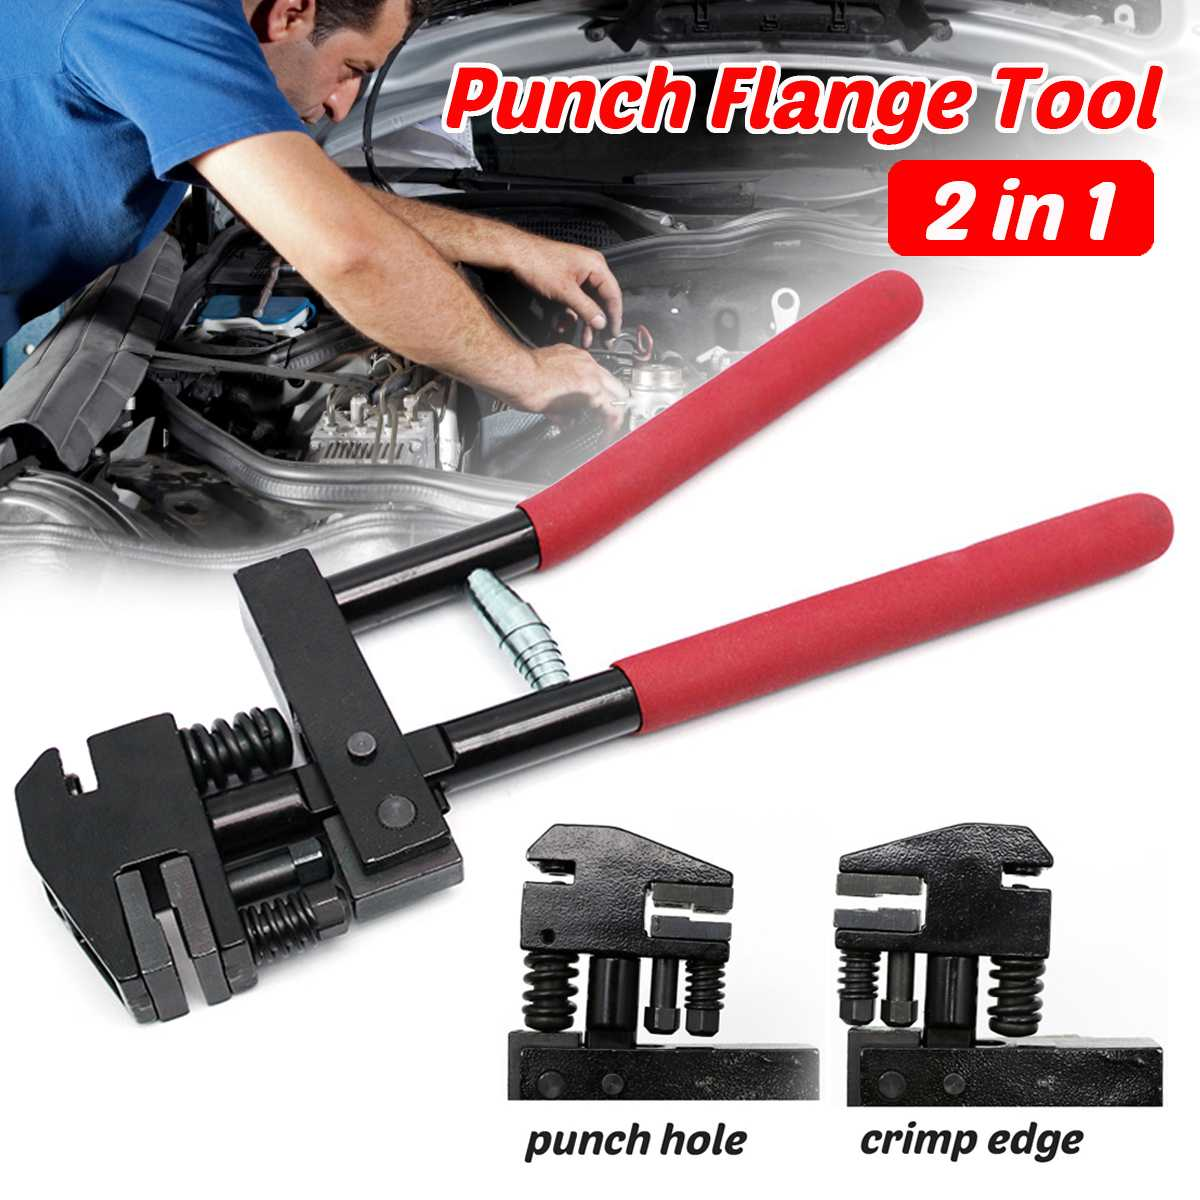 5mm Hole Punch Pliers Joggler Puncher Panel Flang Metal Repair Flanging Crimp Hand Tool Kit Set of tools Rotating Head Alloy